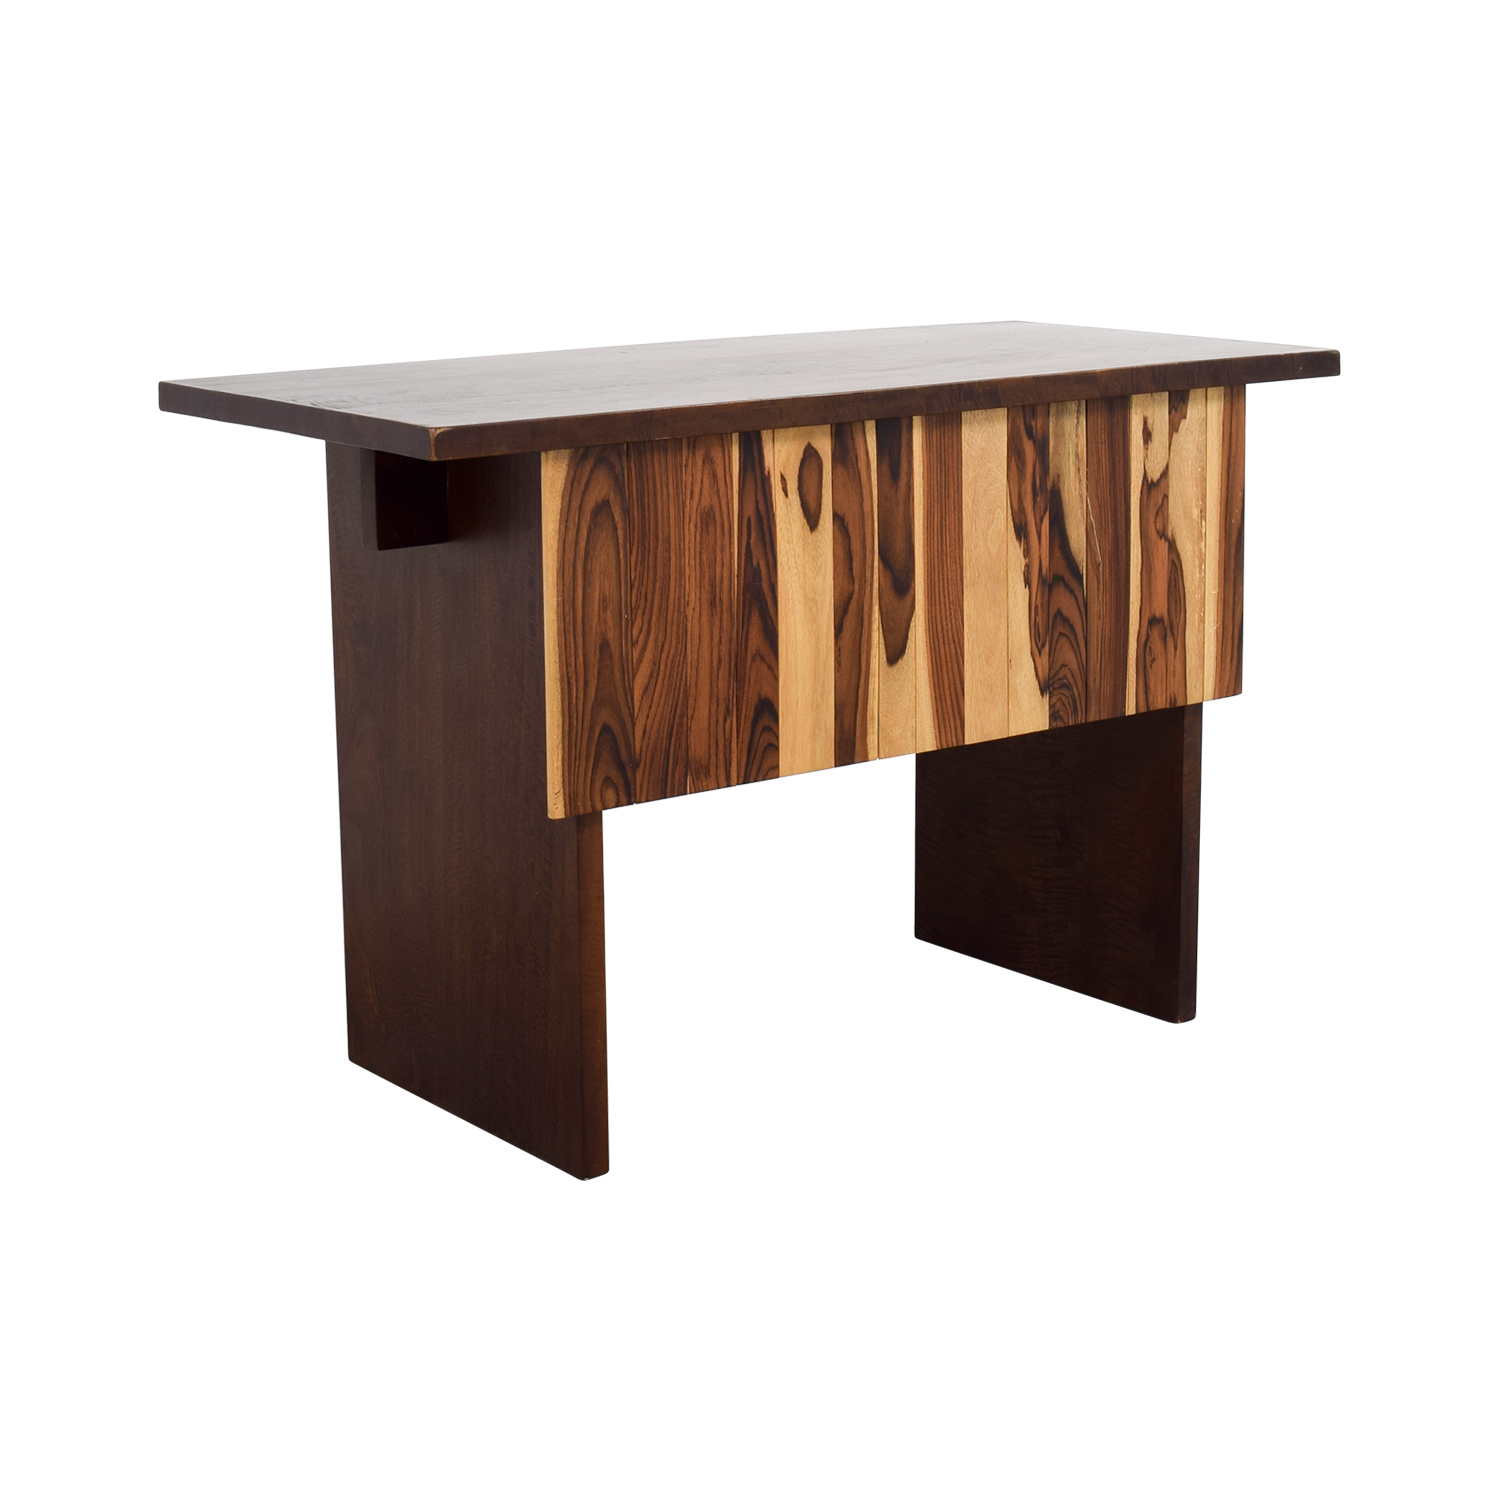 70 off custom indonesian hardwood mango and snokeling wood desk tables - Custom office desk ...